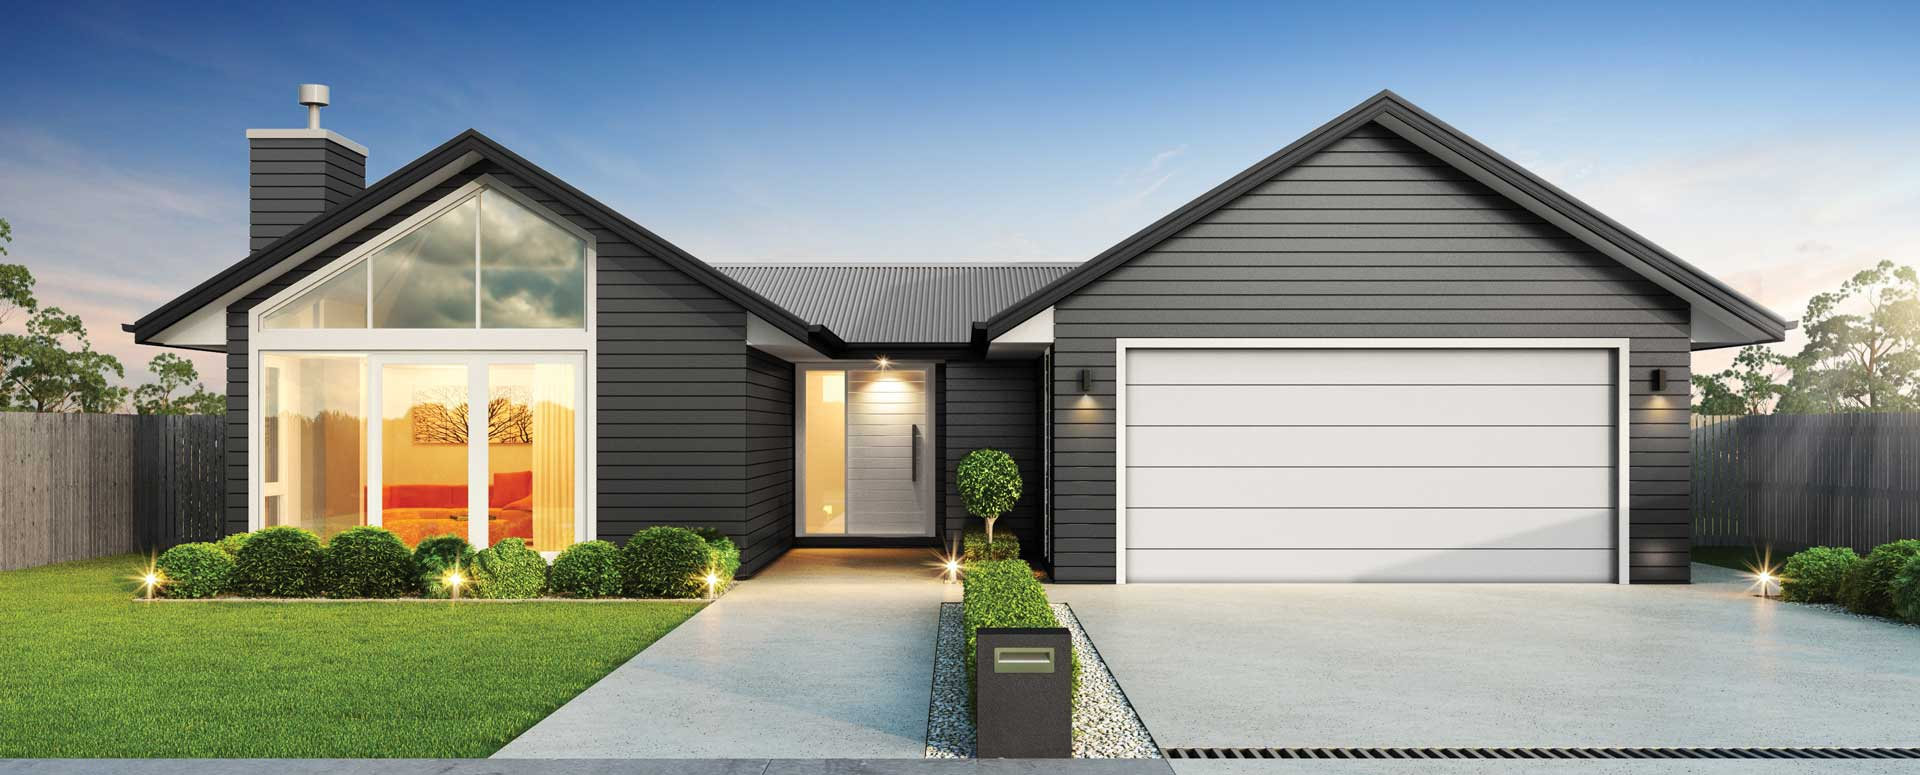 Arnold Penny Homes Banner Image